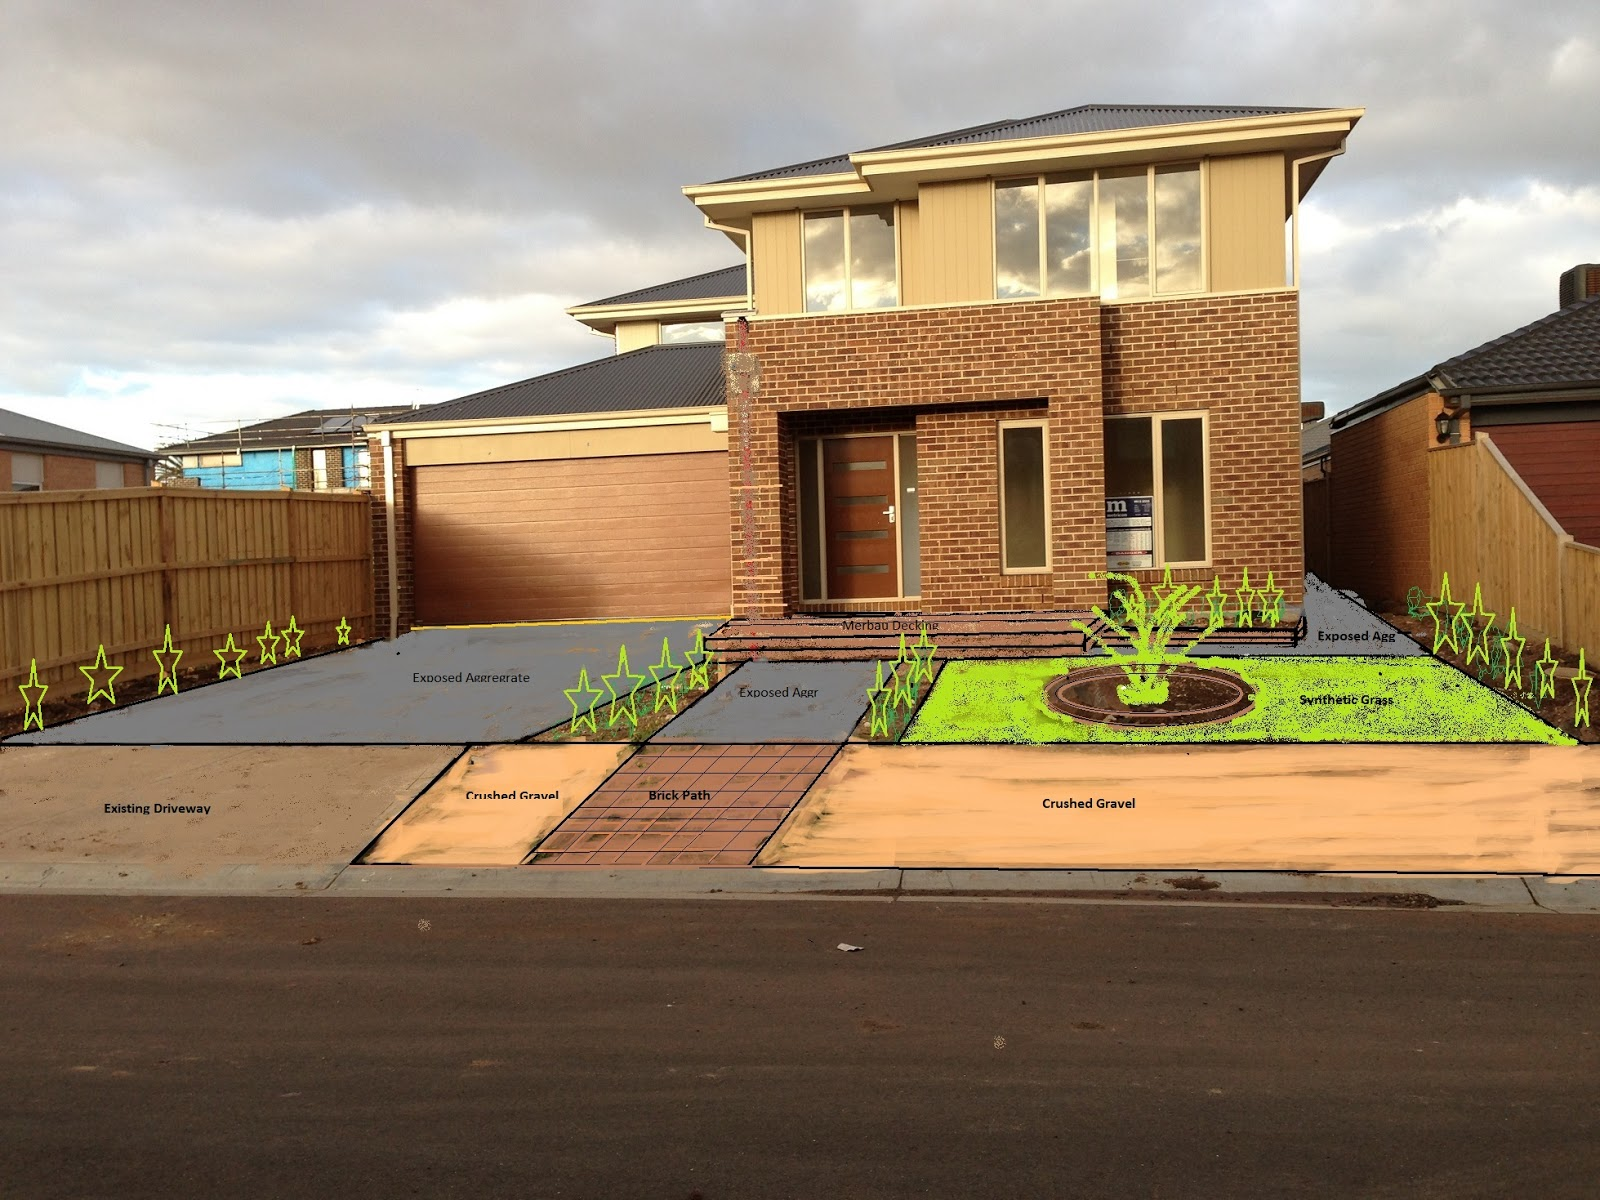 Metricon - Winchester 28 : Landscaping Ideas and Driveways: Working ...